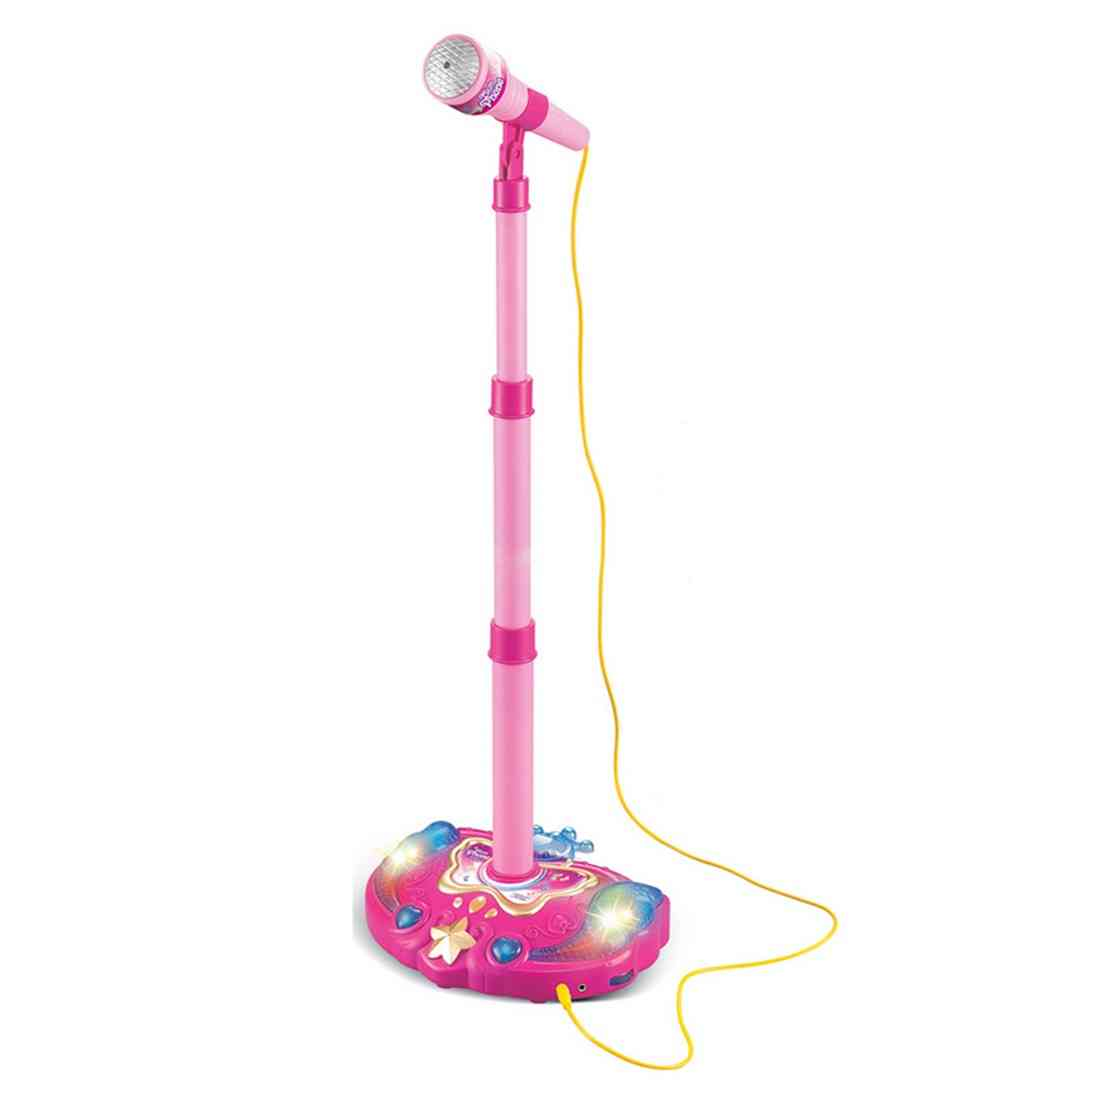 Karaoke Microphone With Adjustable Stand -  Musical Instrument With Light Effect